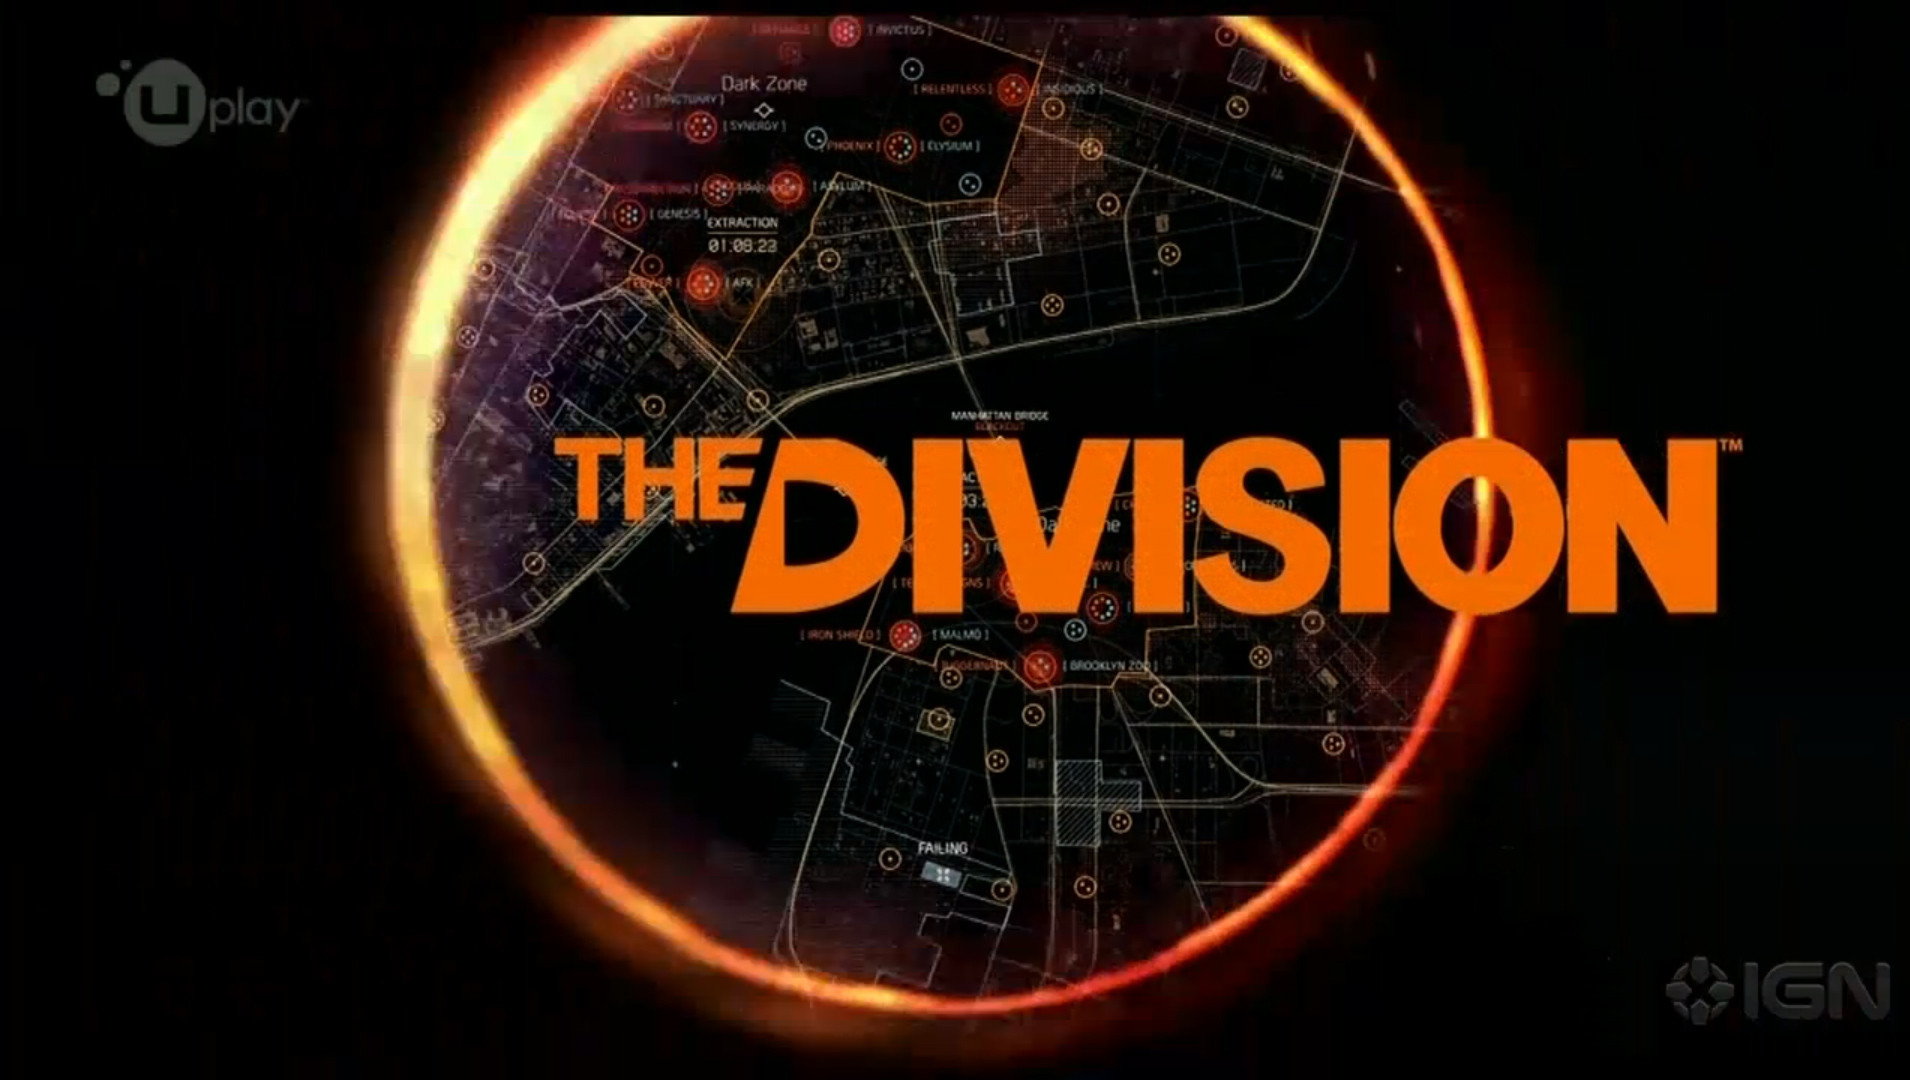 Tom Clancys The division city map wallpapers and images   wallpapers 1910x1080